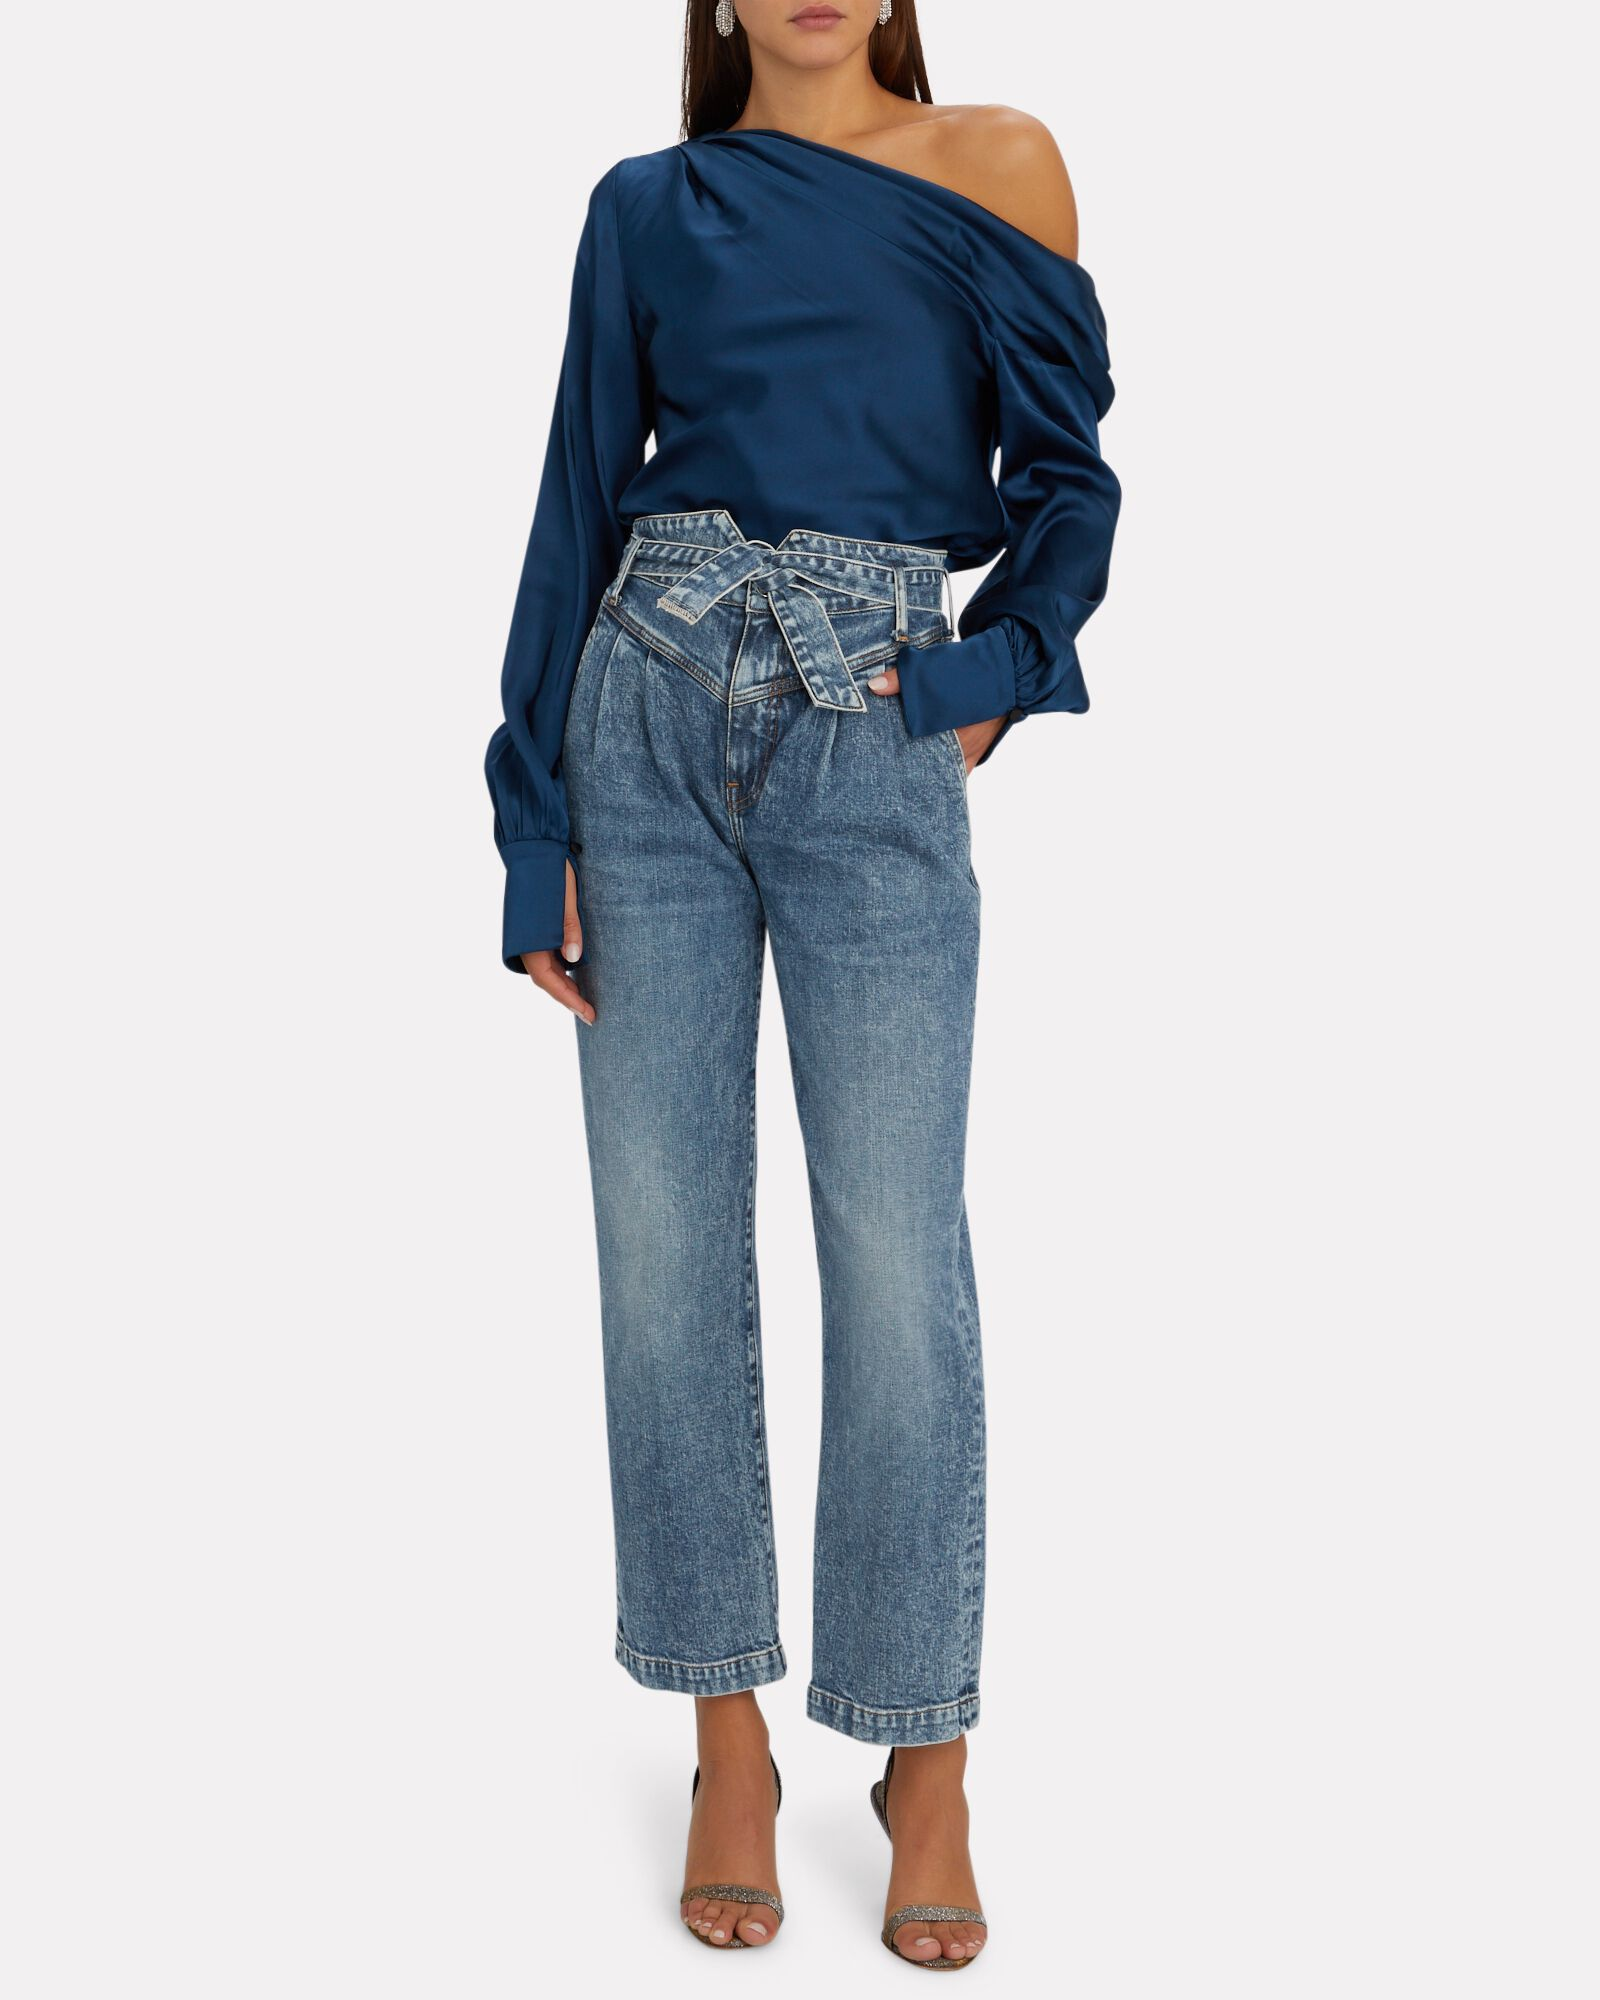 Theo Belted High-Rise Jeans, MULHOLLAND, hi-res